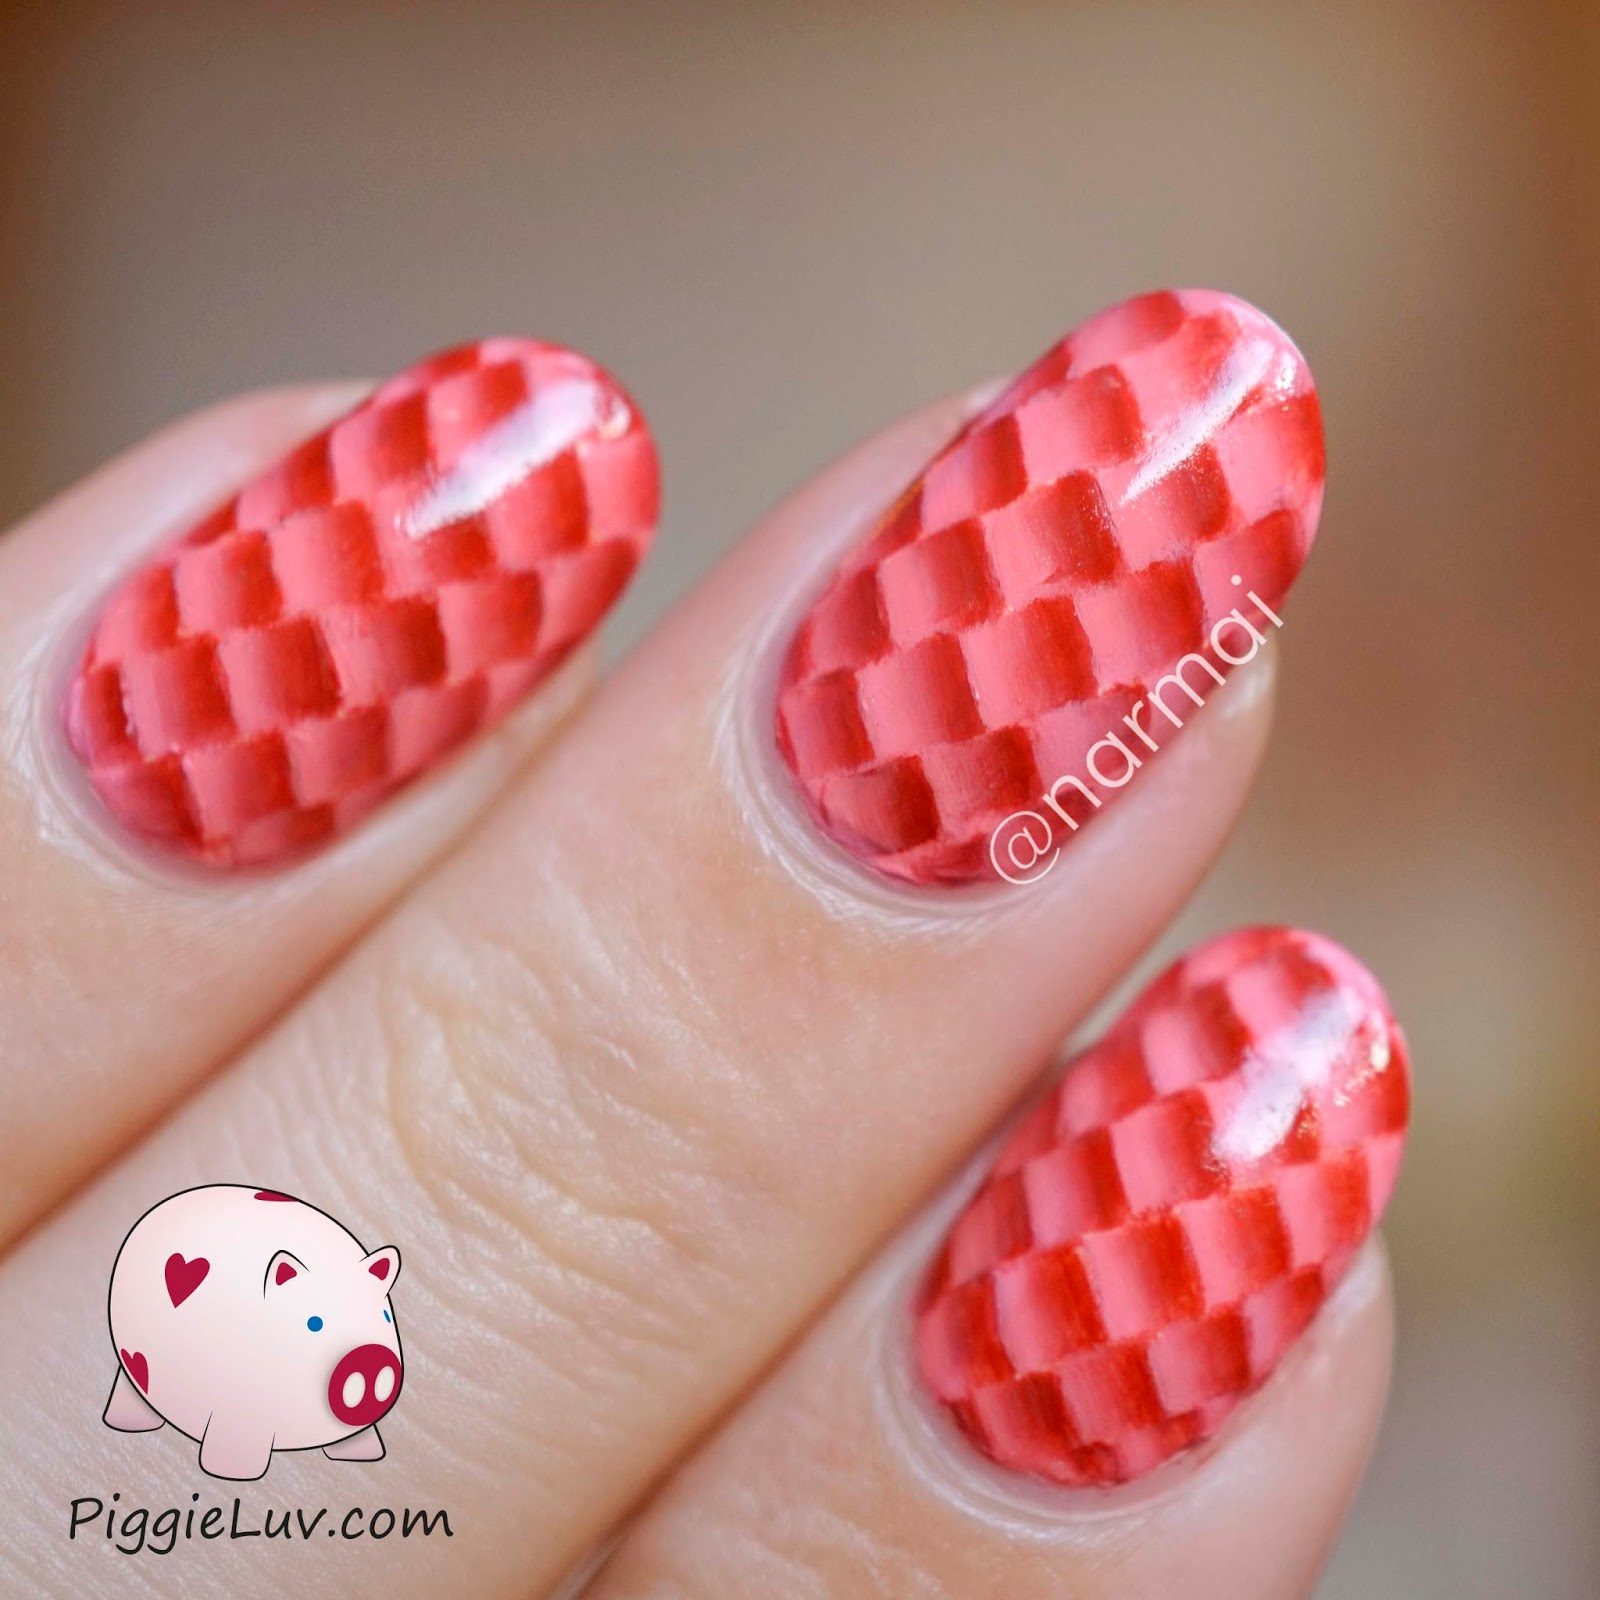 Piggieluv red one stroke snake skin nail art this is so super easy all you have to do is load your brush like you would for the one stroke technique and then make little boxes all over the nail prinsesfo Gallery